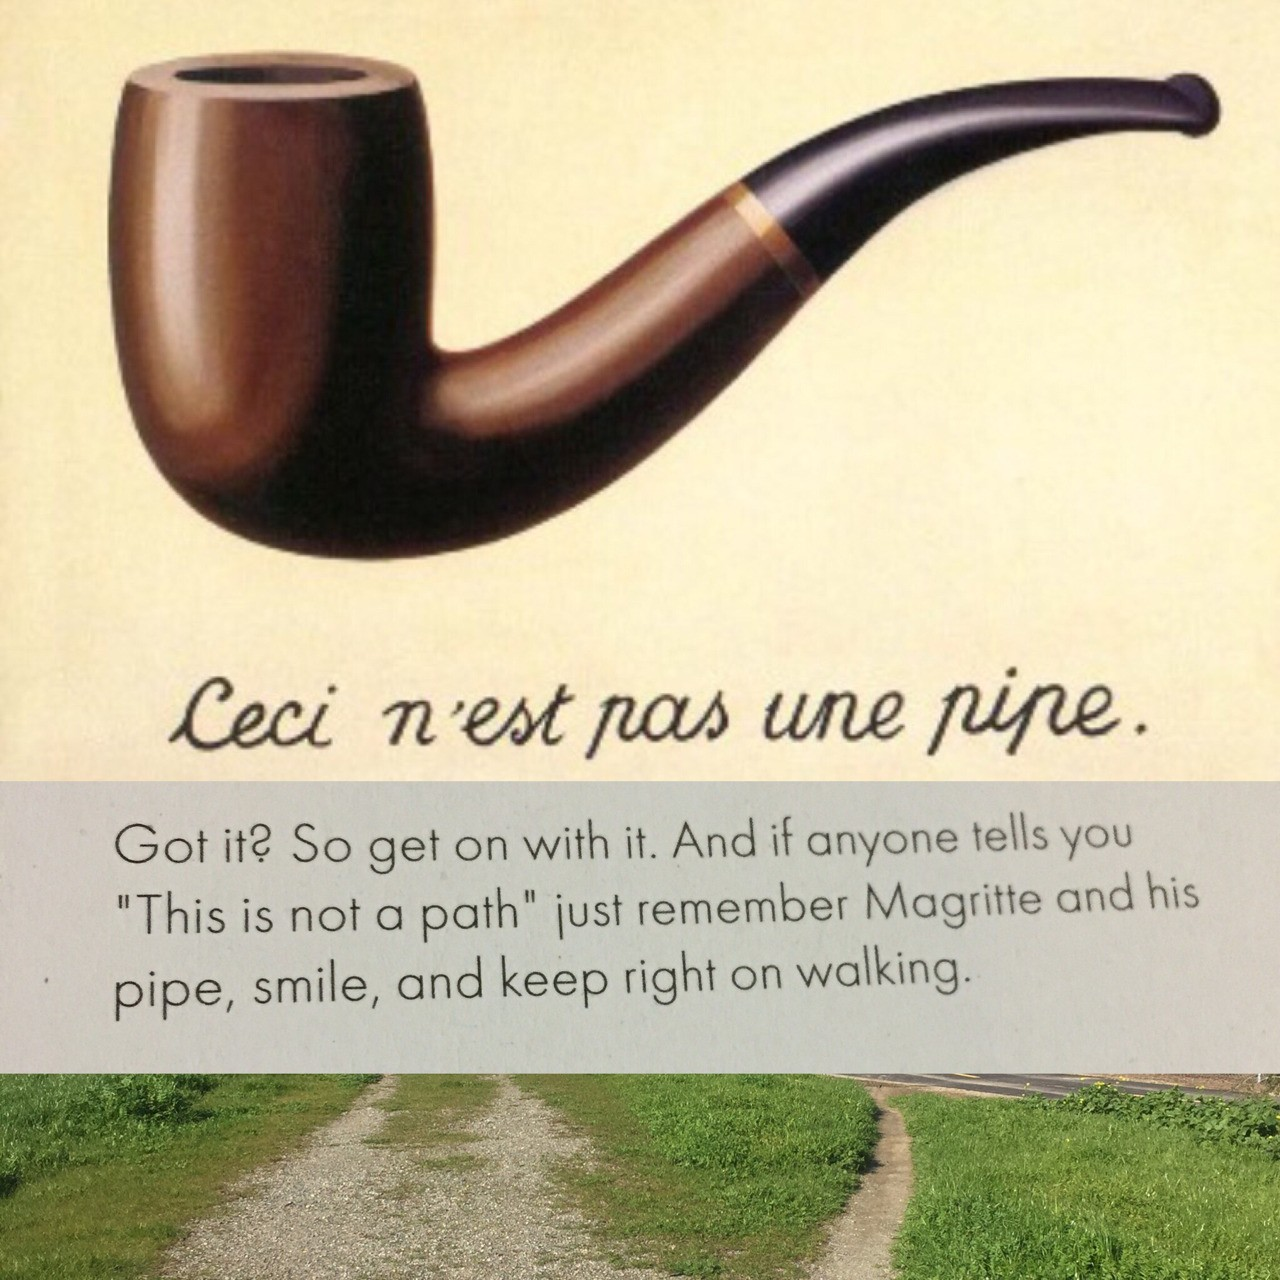 """Enjoyed reading """"This is not a detour"""" by Samuel Valiente with photos by Jan Dirk van der Berg in Perdiz magazine issue 7. Here is the 'Treachery of Images' by Rene Magritte with the words """"This is not a Pipe"""" as referenced in the article. Inspired to take my own pictures of the detours found while walking my own path. #path #walking #magritte #pipe #smile #treacheryofimages #jandirk #samuelvaliente #philosophy #arthistory #makesmehappy #perdizmagazine #naturefindsaway #pioneers #hygge #thoughts #microadventure #quotes #infj #repost @minkakelly"""